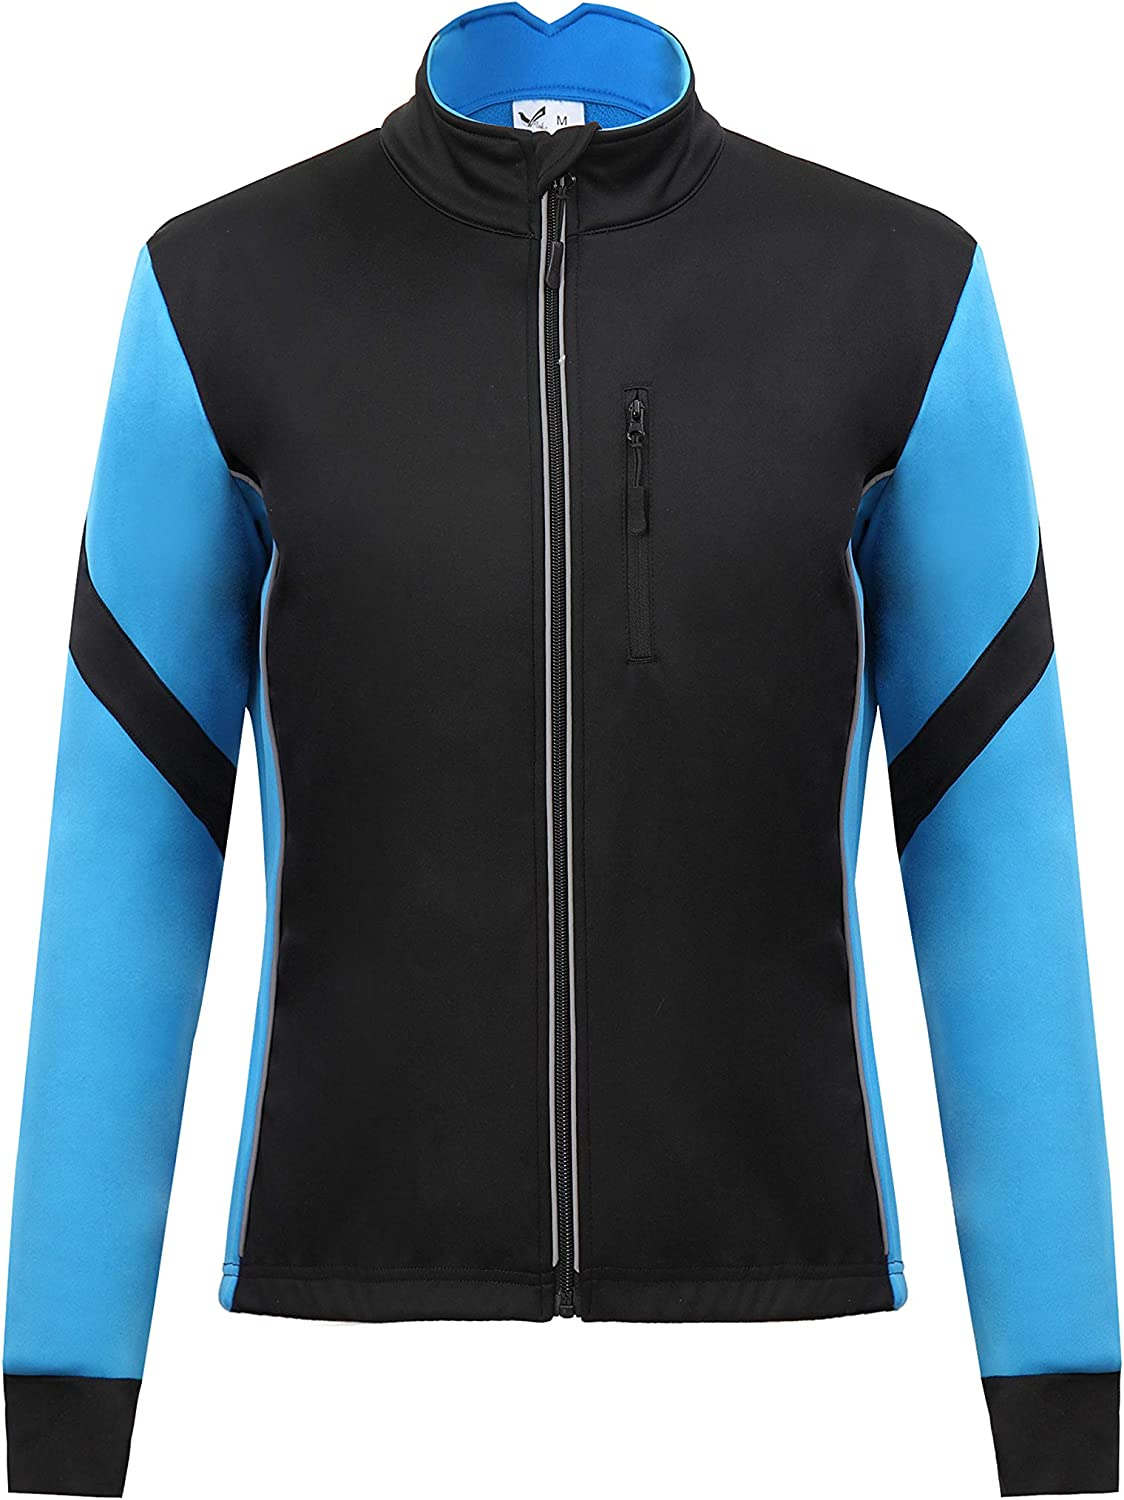 Limited price sale Thermal Cycling Jersey Long Sleeve Water Super sale Reflective Windpro Snow